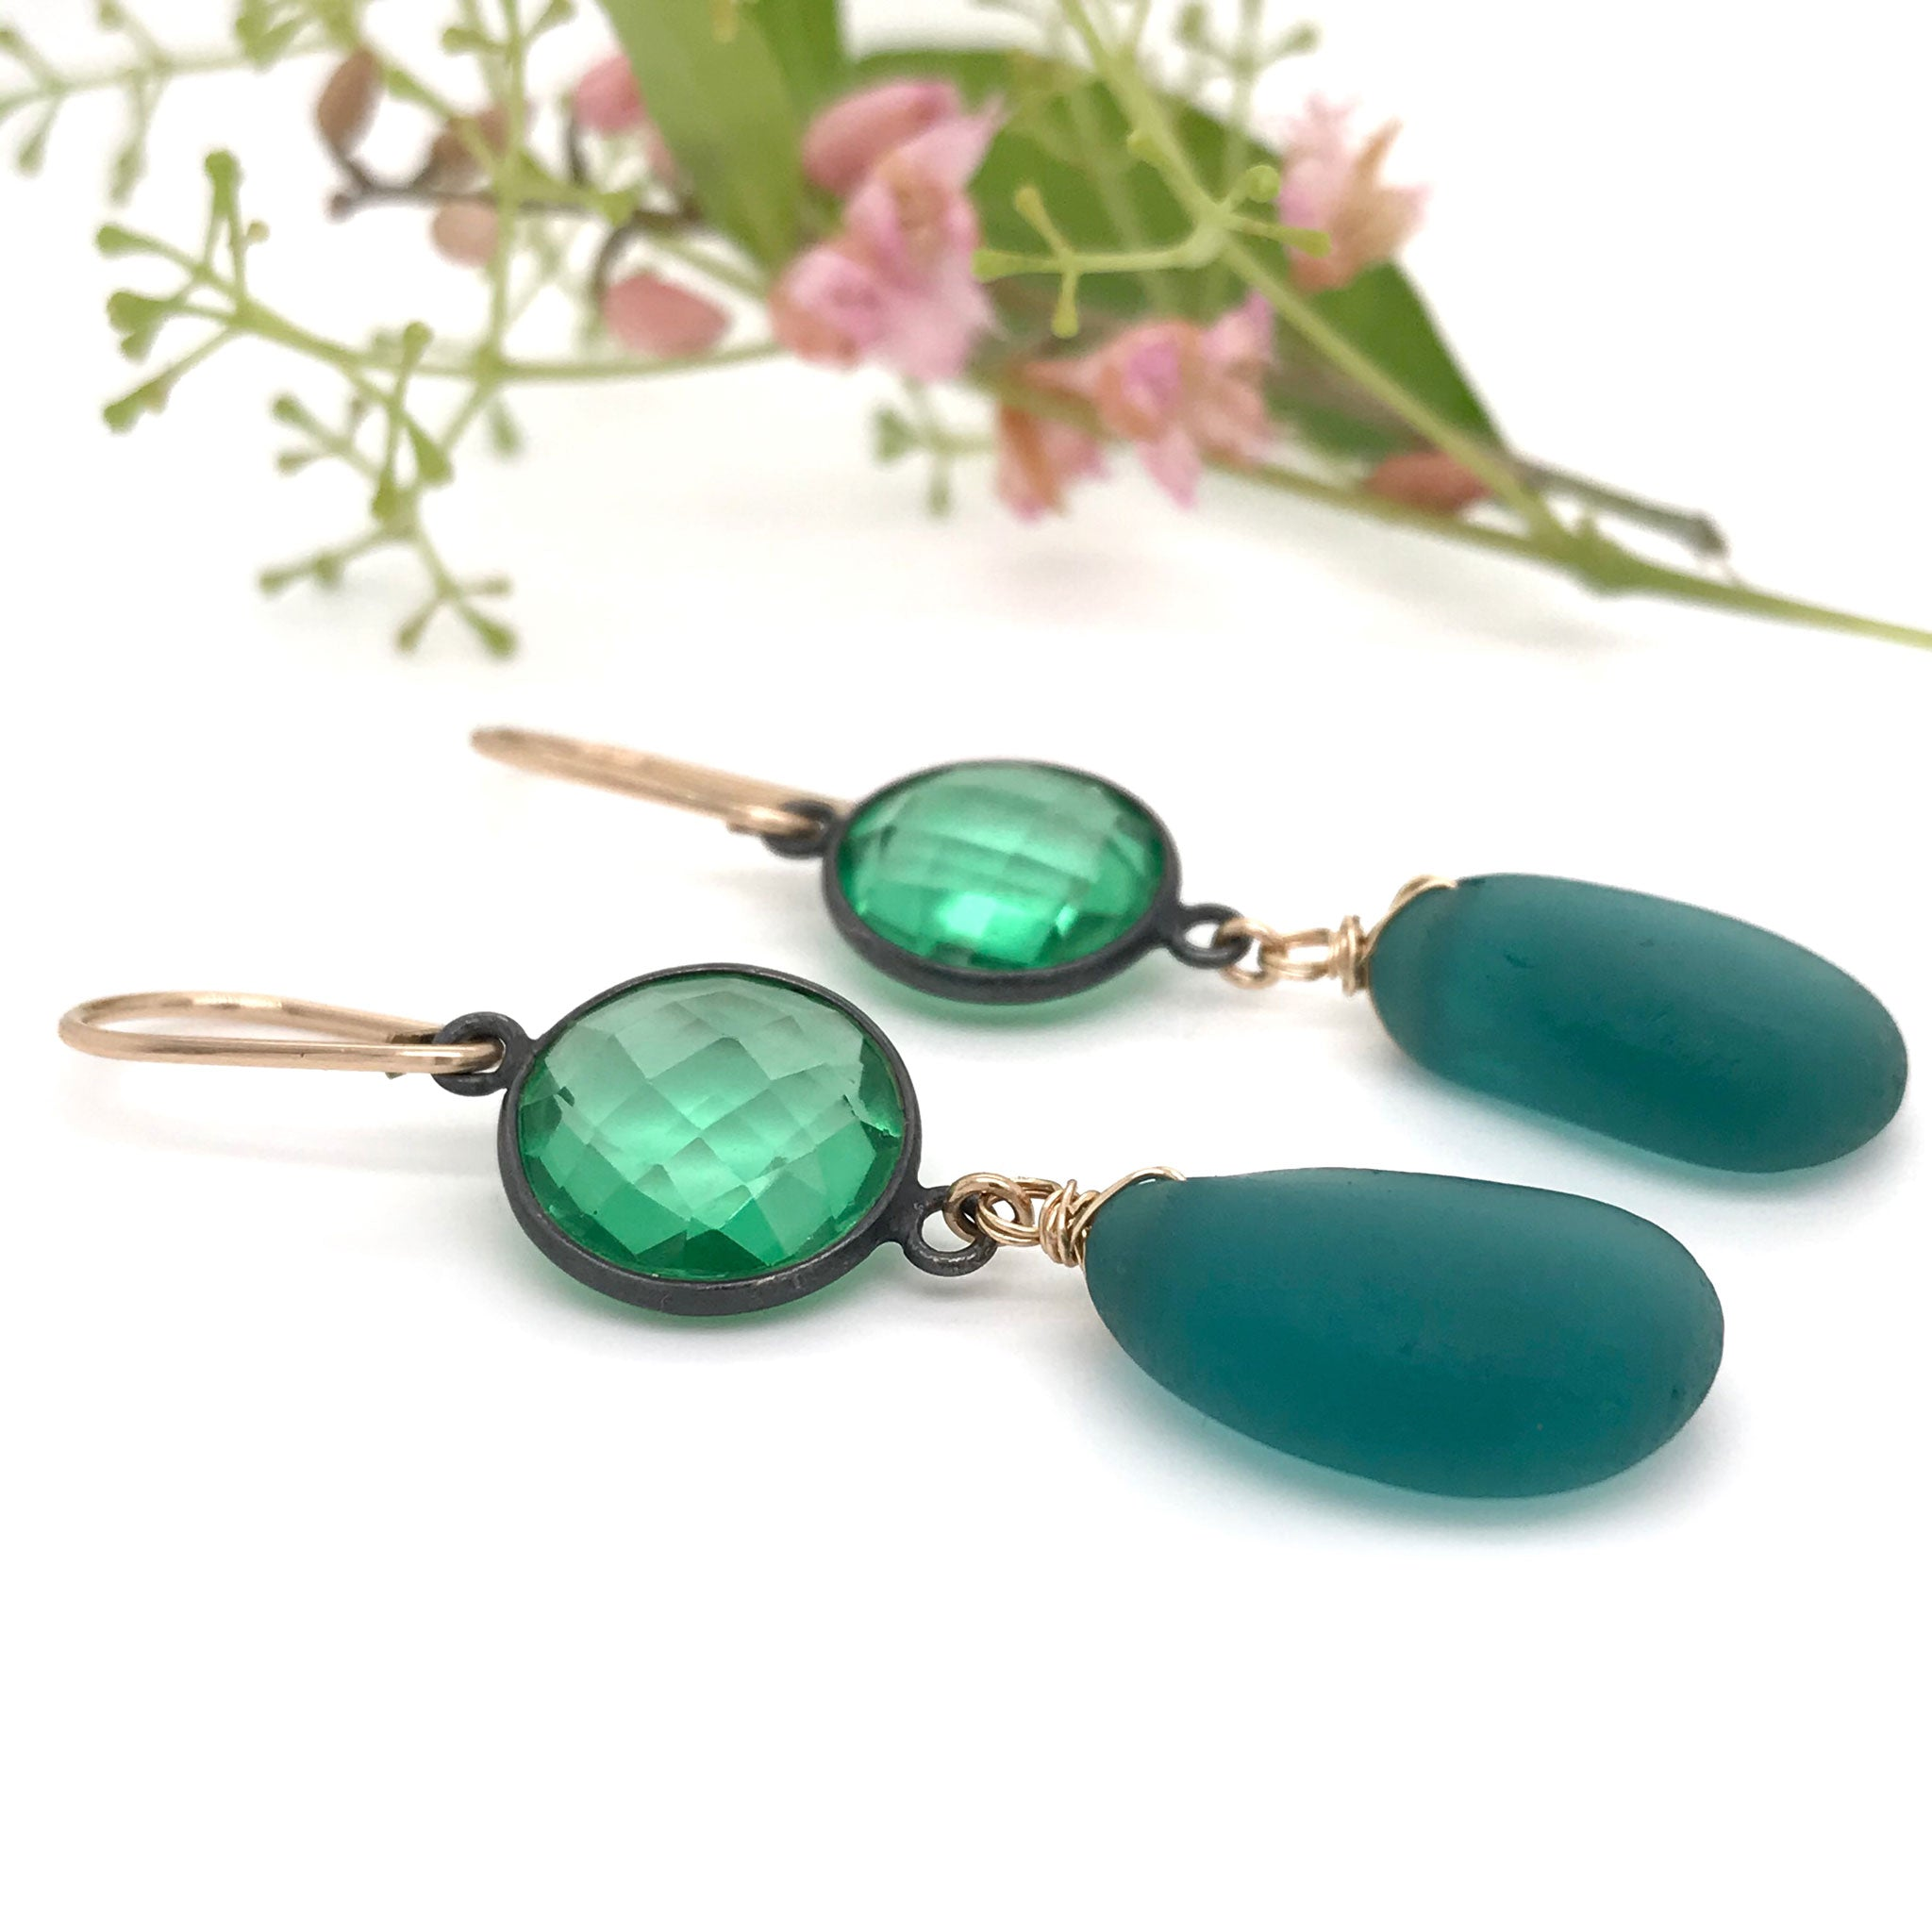 glamorous earrings with teal seaglass and green quartz kriket broadhurst jewellery